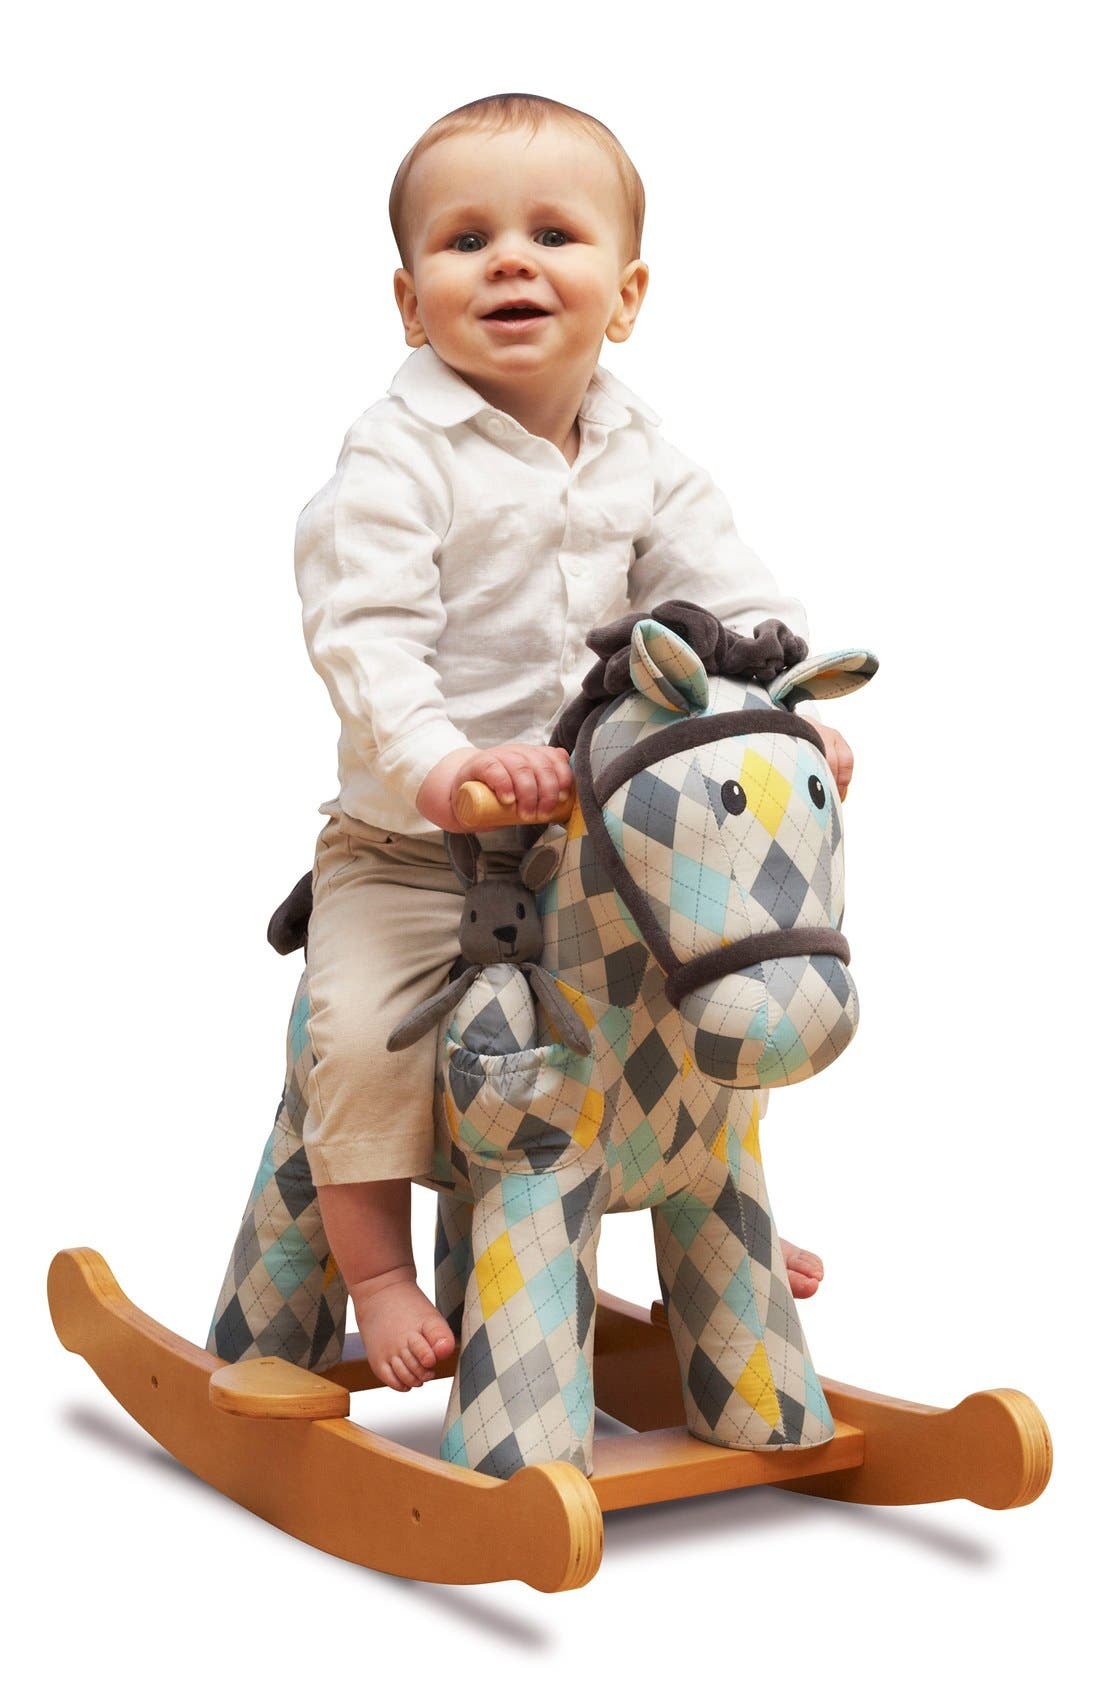 Lewis & Fitz Rocking Horse & Stuffed Animal,                             Alternate thumbnail 2, color,                             Blue Plaid